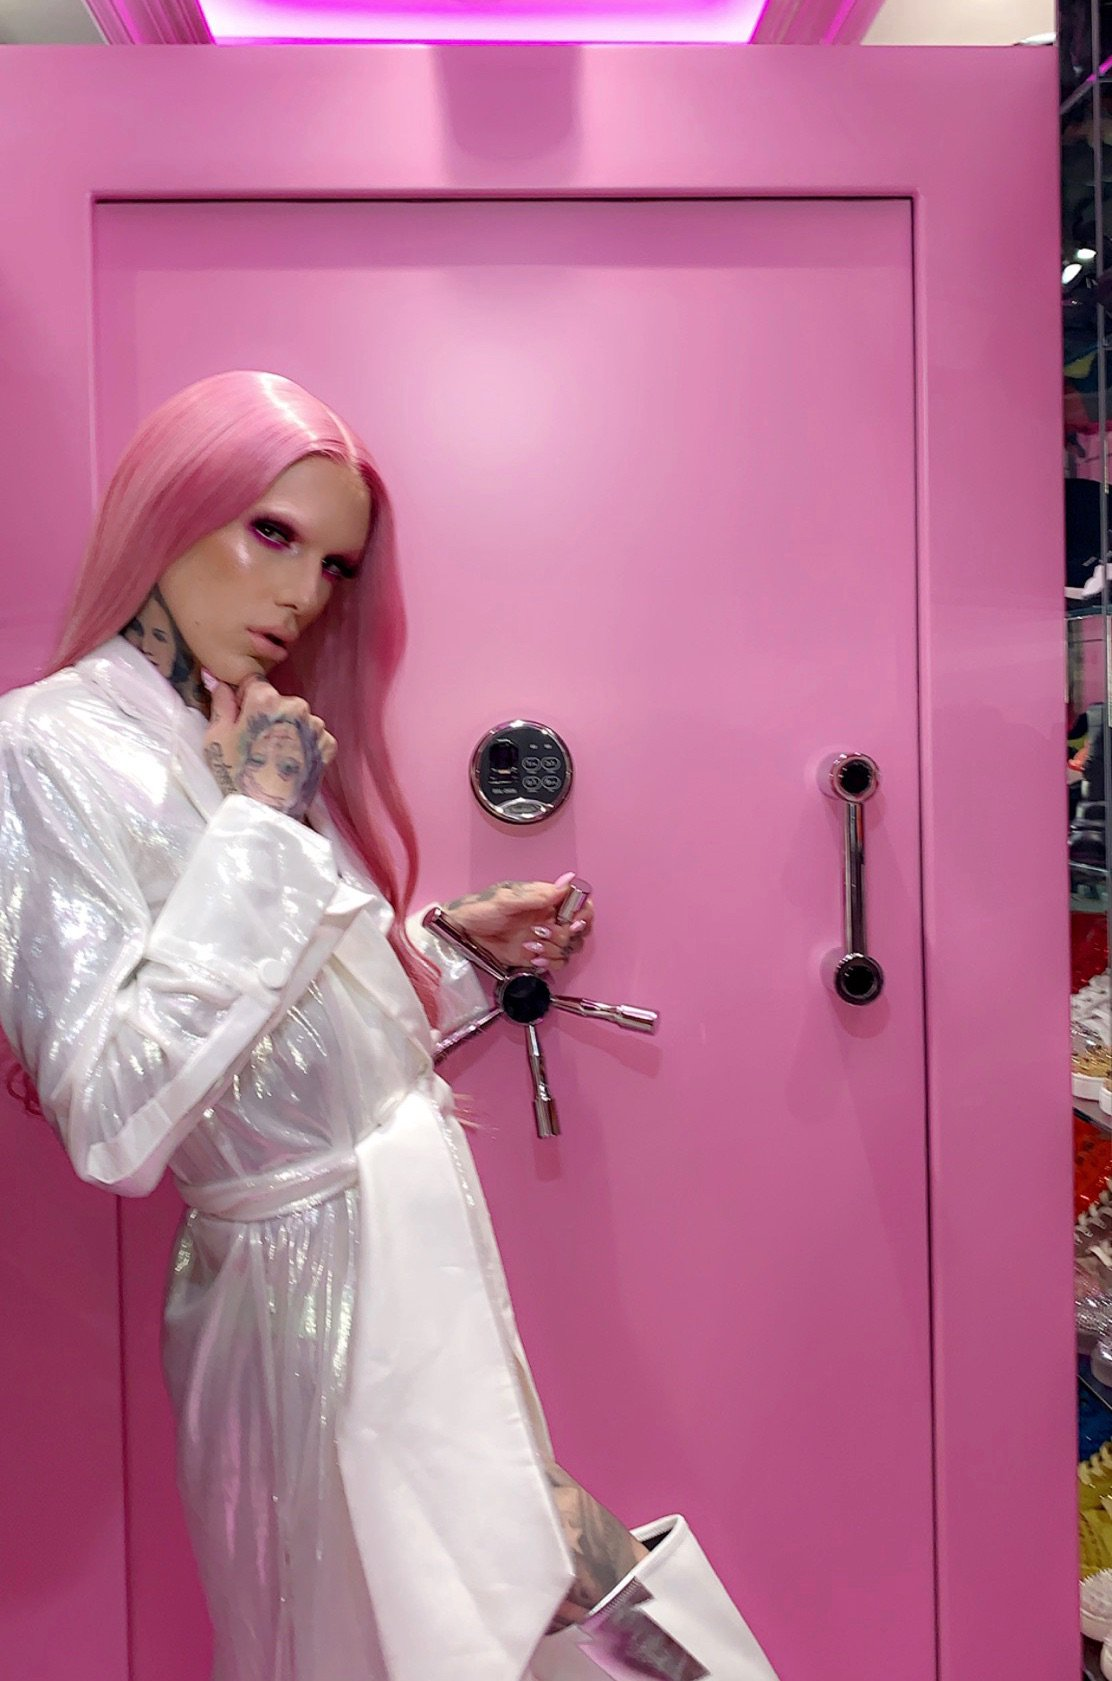 Jeffree Star On Twitter The Door To My Closet Weighs Over 10 000 Pounds Is Bulletproof And Can Only Be Entered With My Eye Scan Fingerprint Full Tour Of My Pink